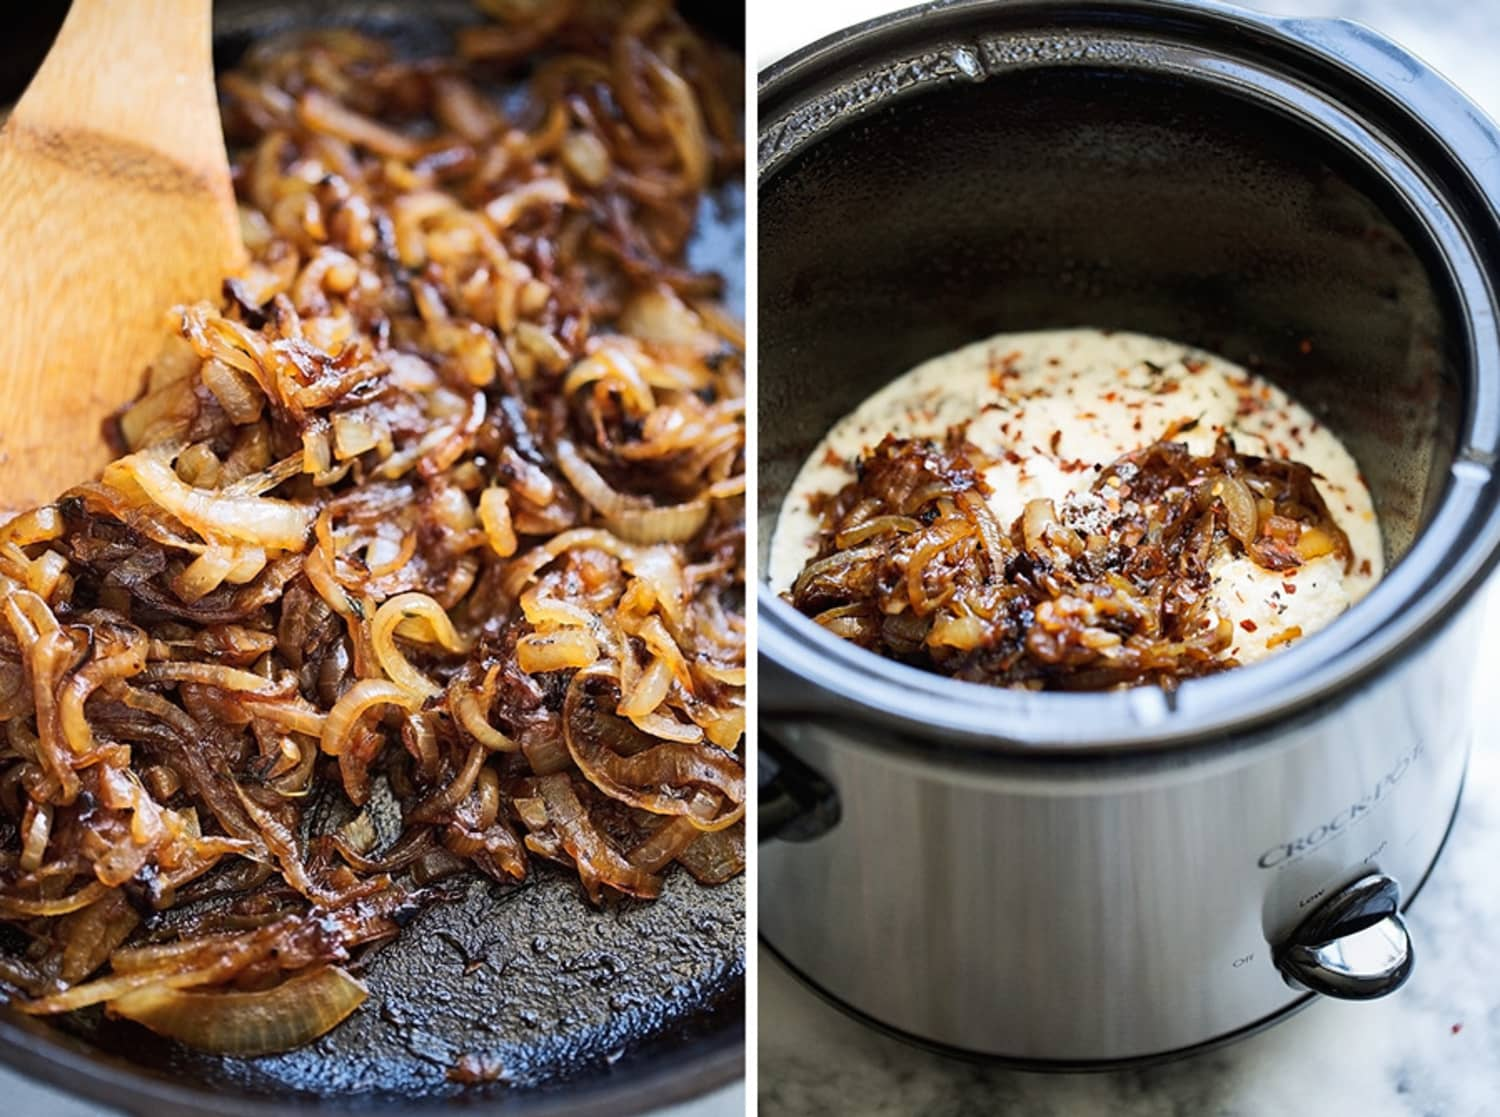 Slow Cooker Caramelized Onion Dip Sounds Too Good to Be True (but It's Real!)